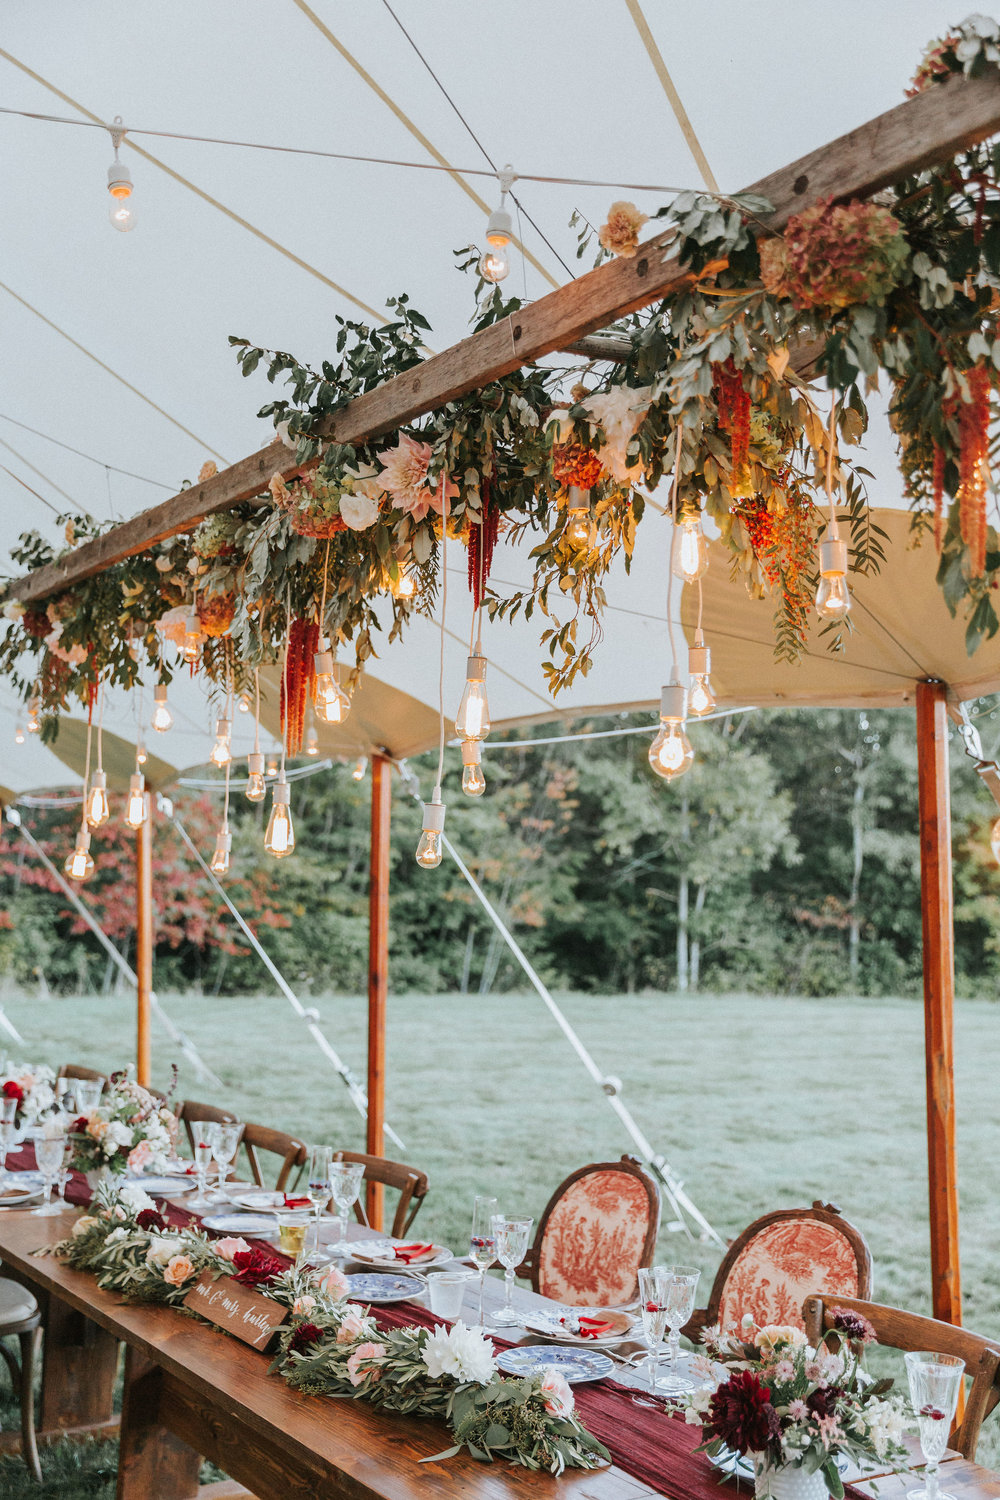 Allie_Greg_Beech_Hill_Barn_Wedding_Dinner-102.jpg